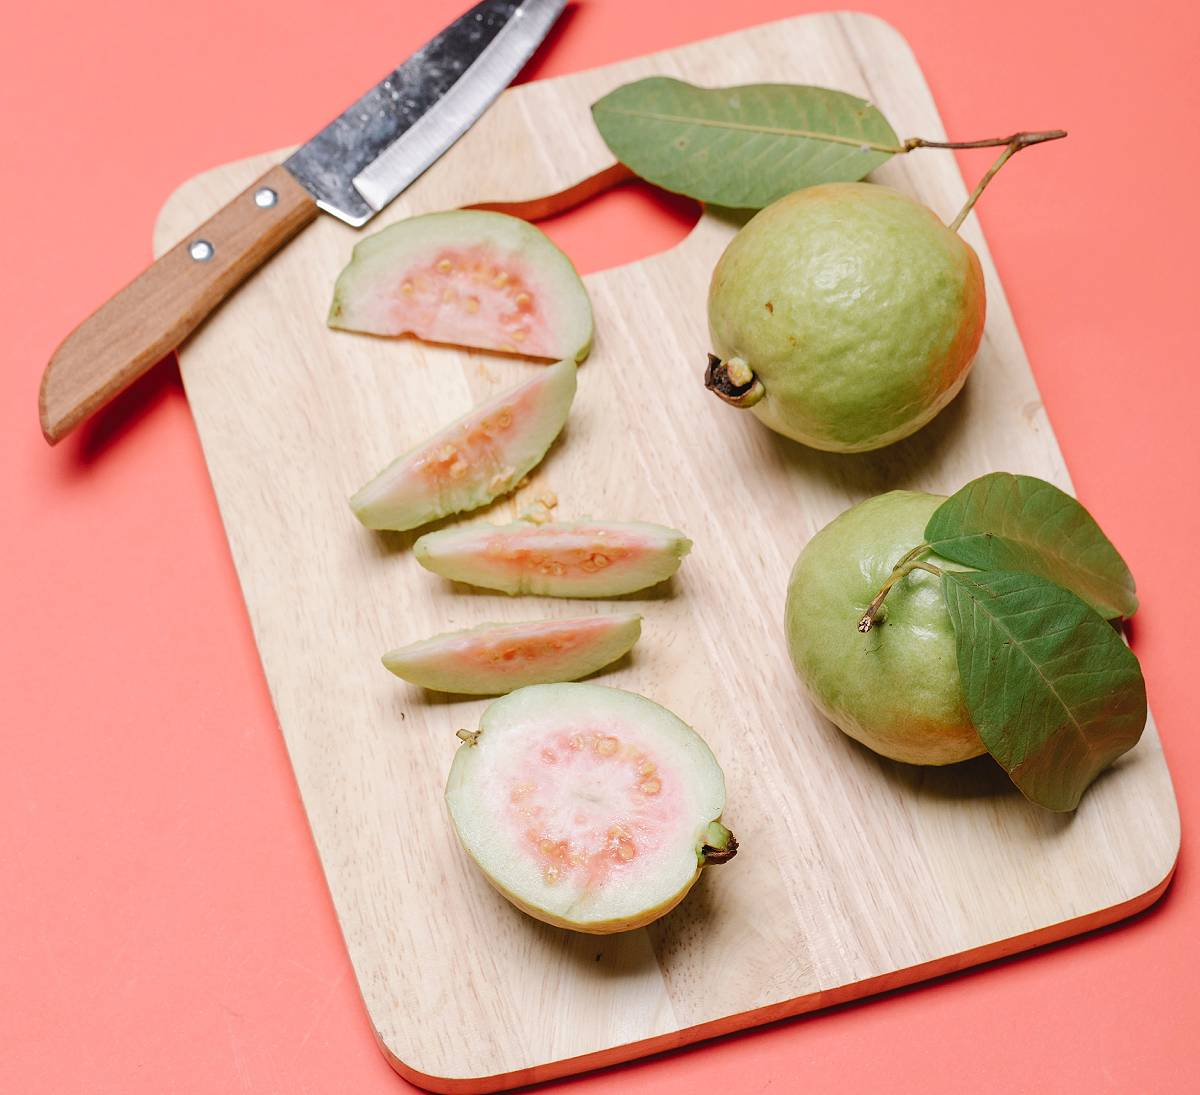 The Best Cutting Boards Every Kitchen Should Own